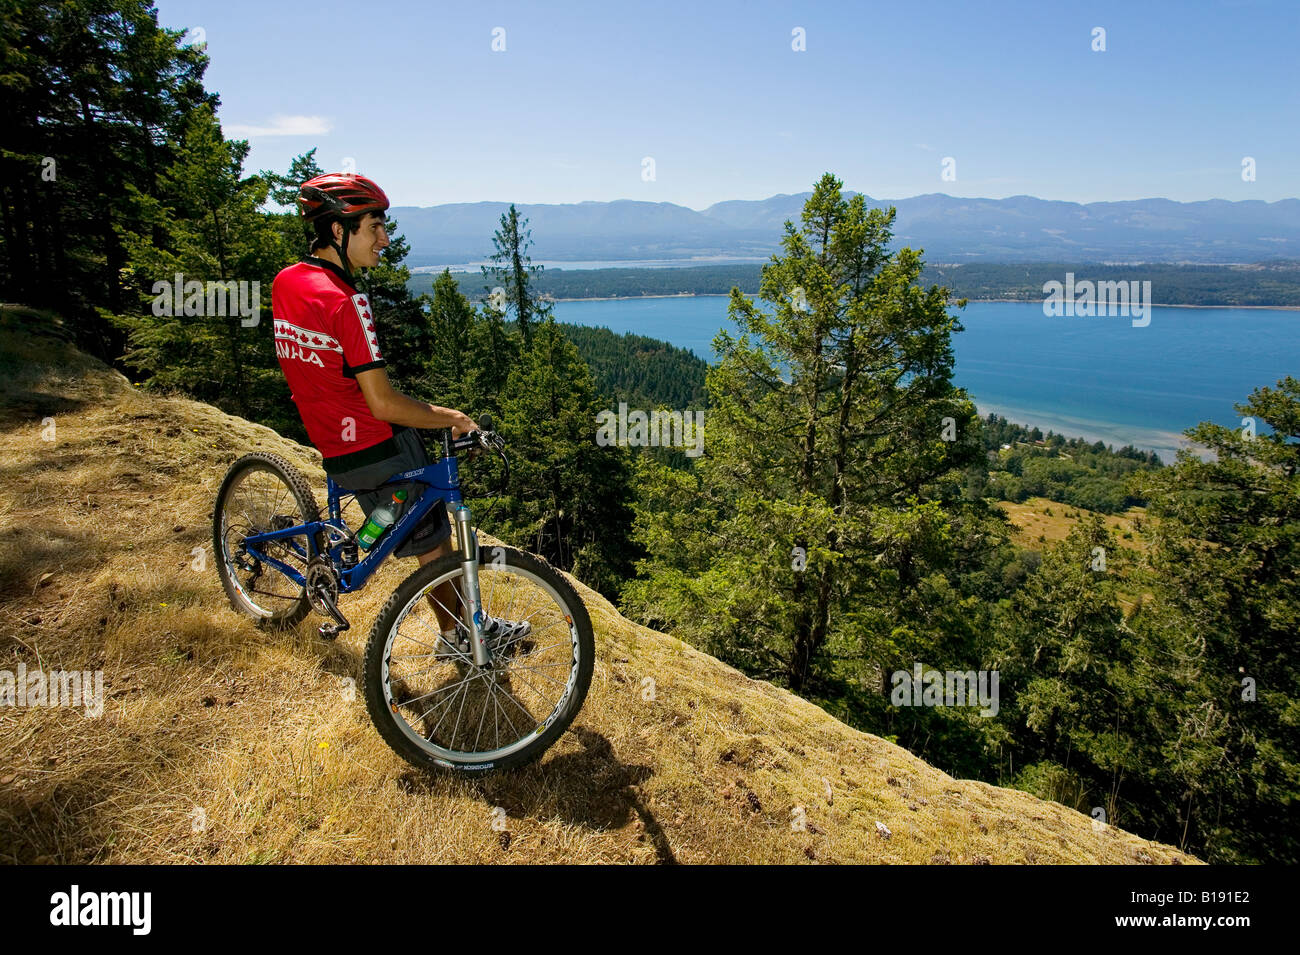 Dylan Holliday on top of Mount Geoffrey on Hornby Island overlooking Baynes sound back towards Vancouver Island. - Stock Image